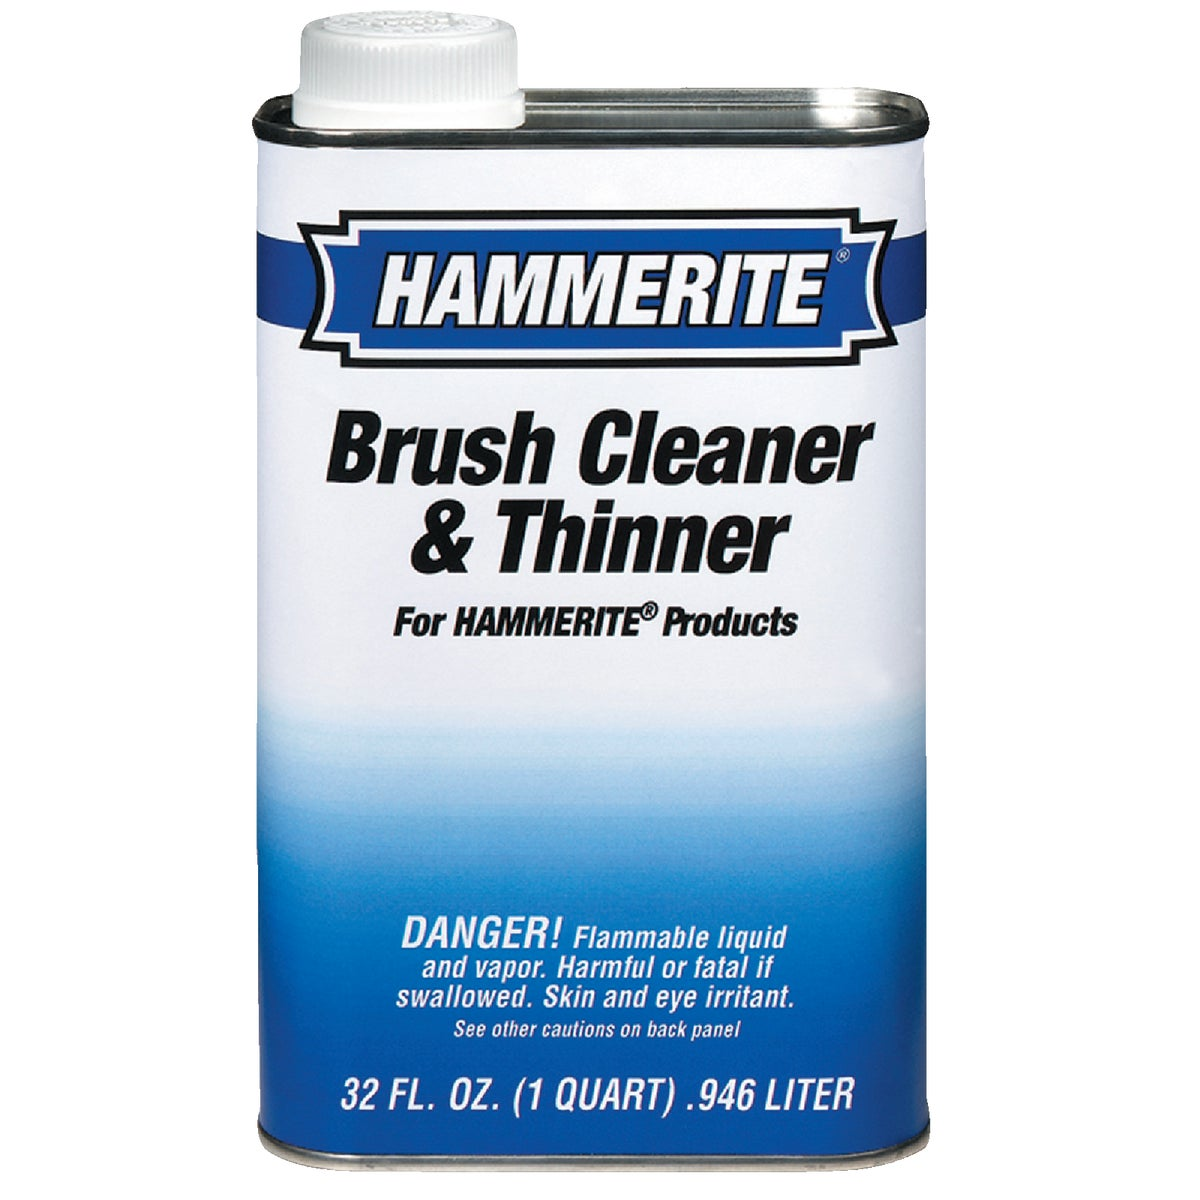 HAMMERED PAINT THINNER - 48500 by Masterchem